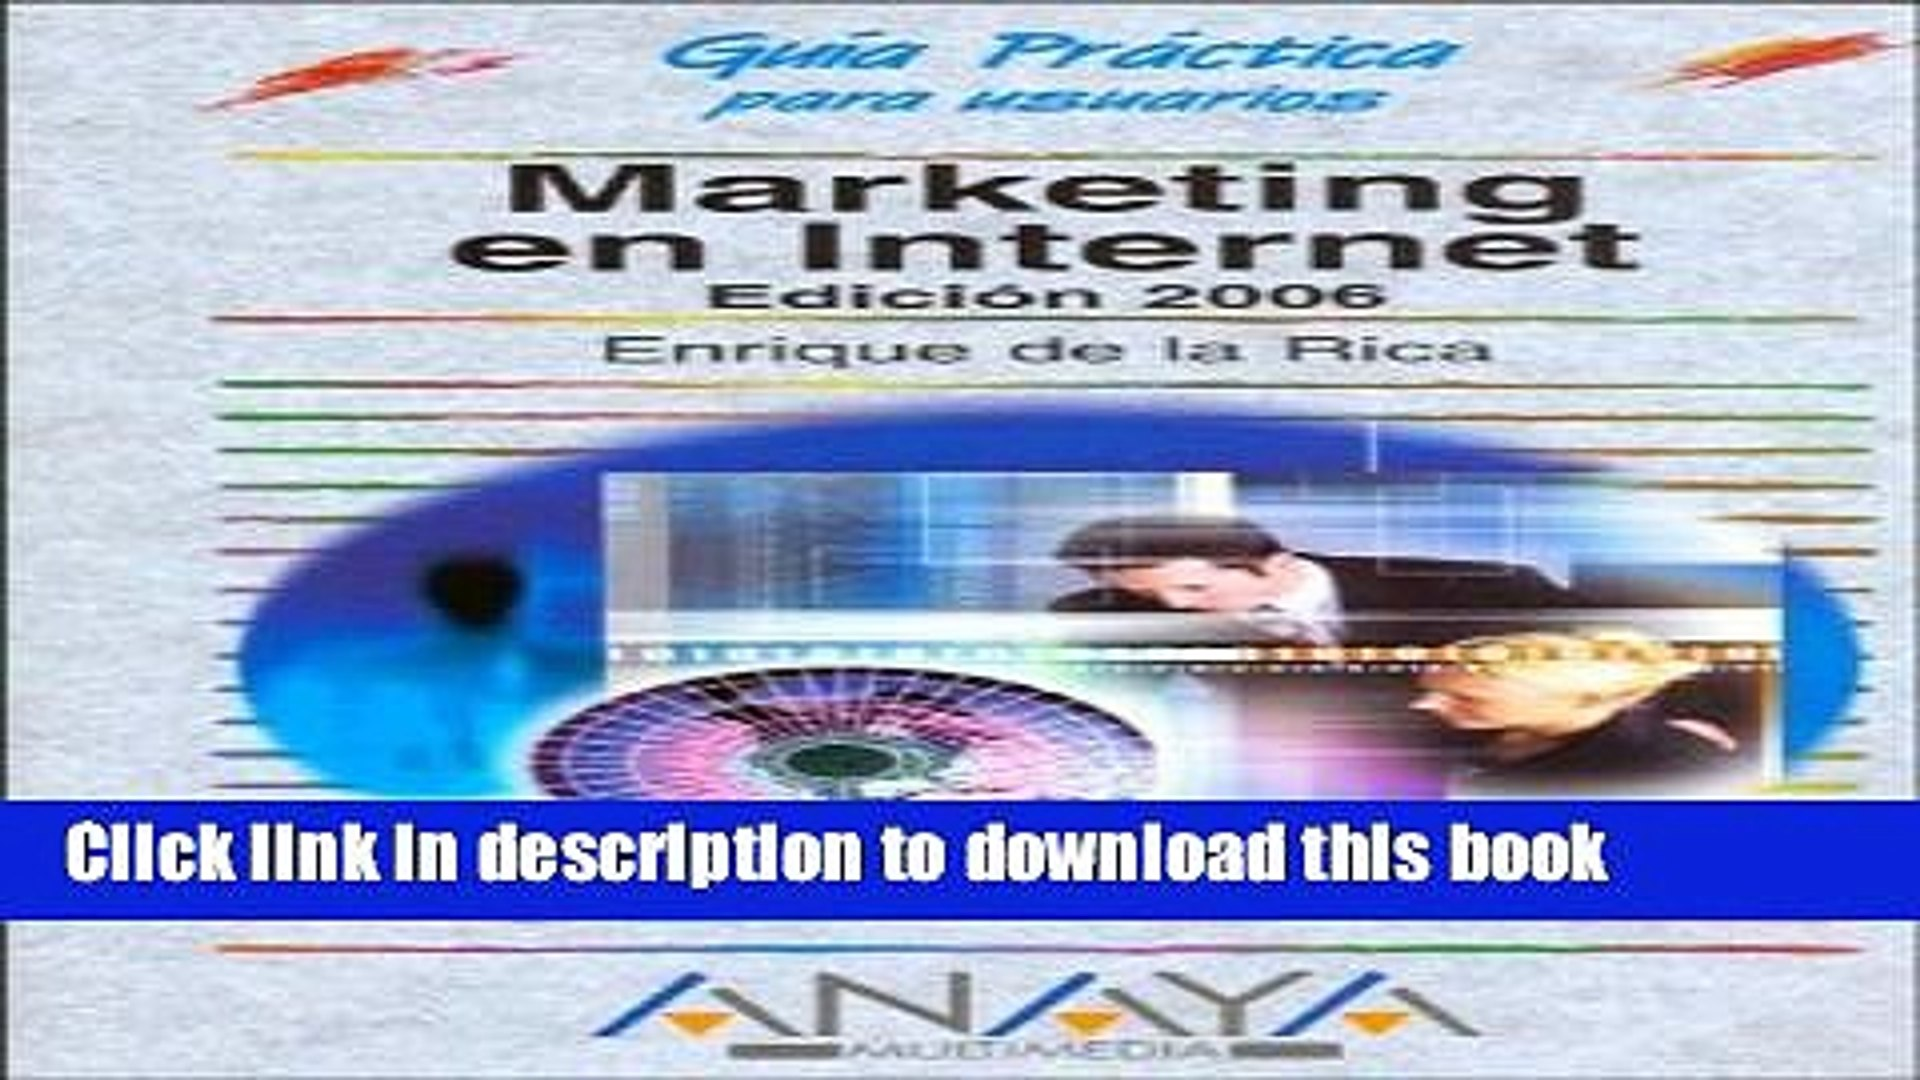 Read Marketing En Internet, 2006 / Marketing on the Internet, 2006 (Guias Practicas Para Usuarios